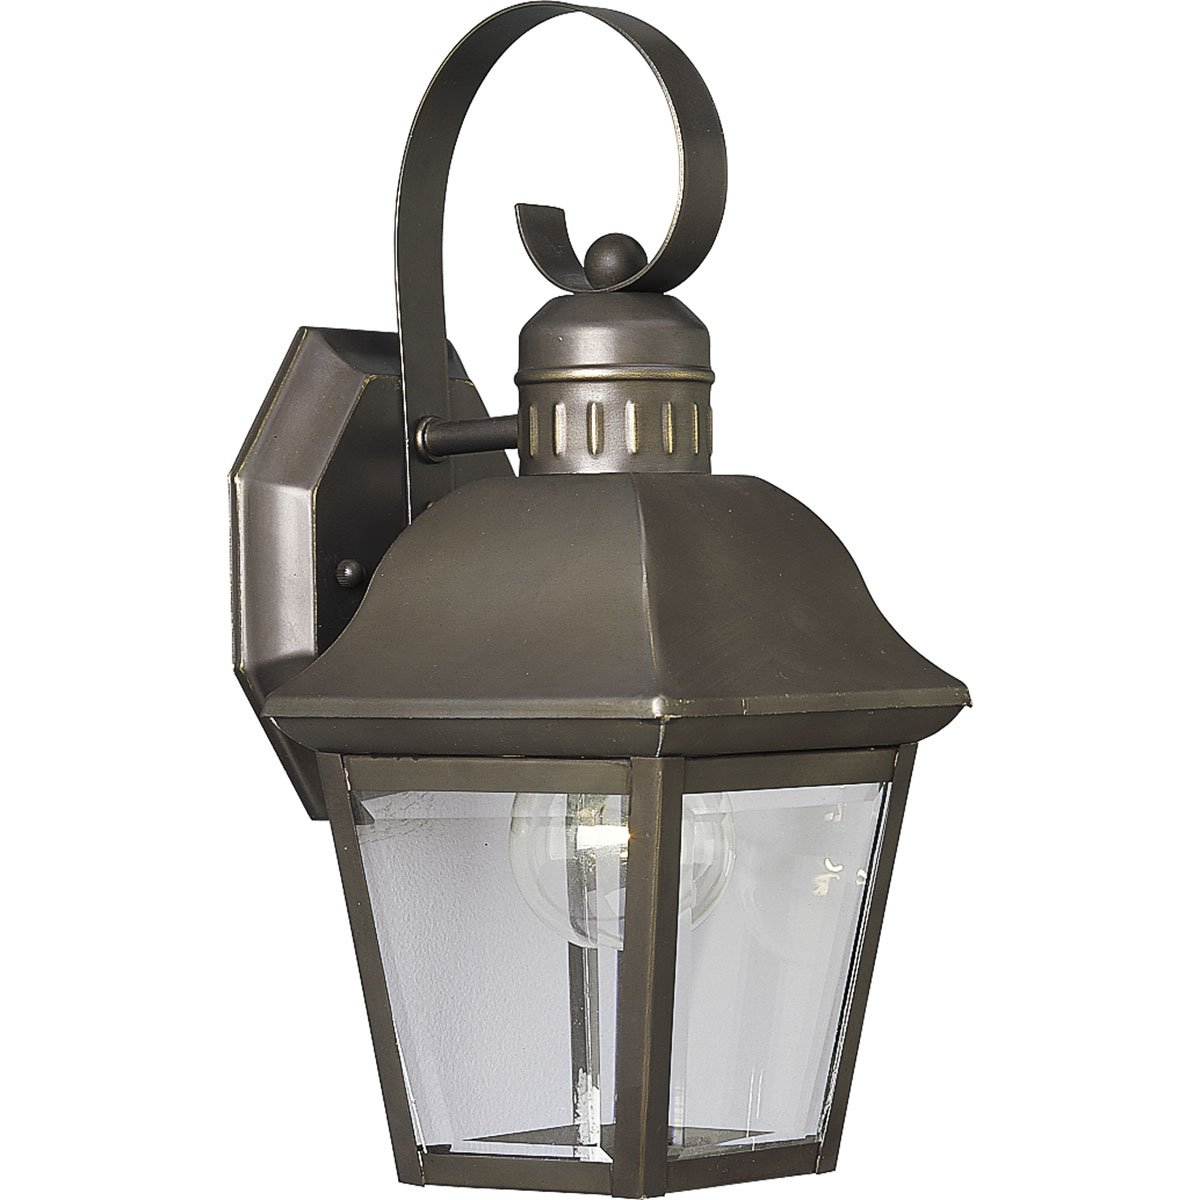 Progress Lighting P5687-20 1-Light Andover Small Wall Lantern with Solid Brass Construction, Antique Bronze